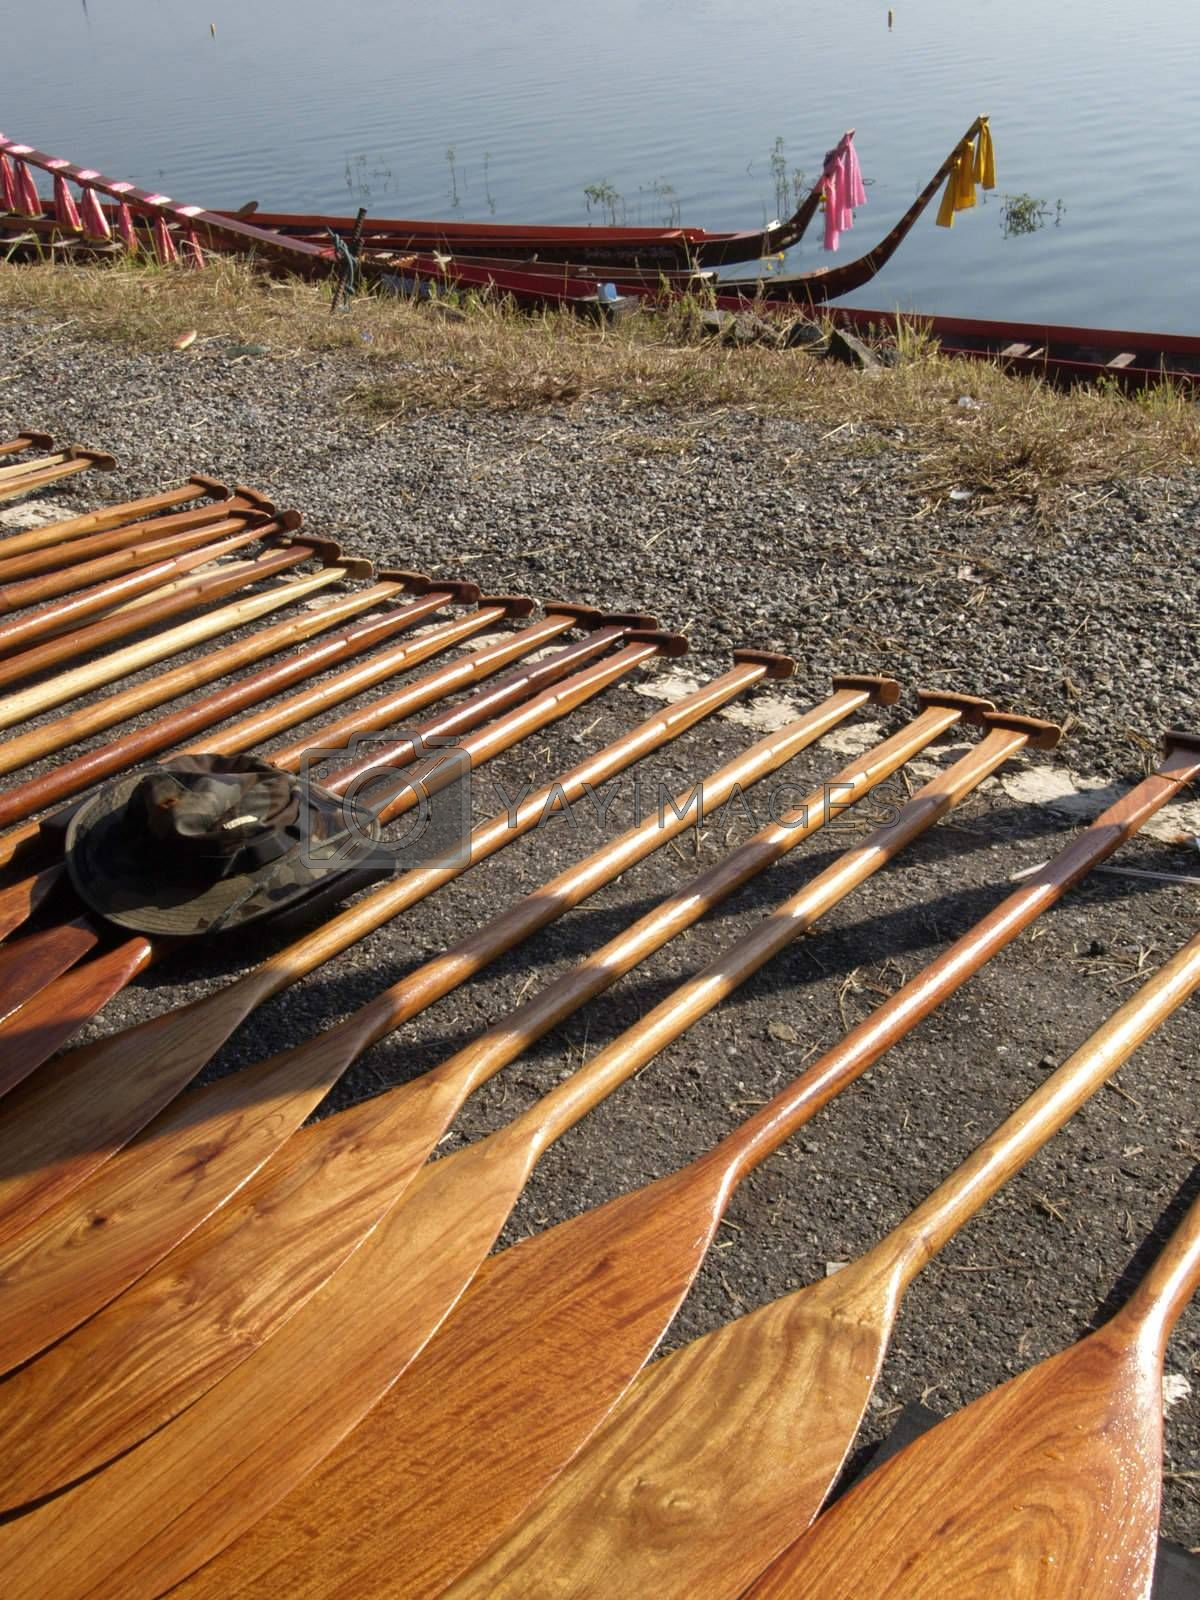 Oars for a dragonboat competition by epixx